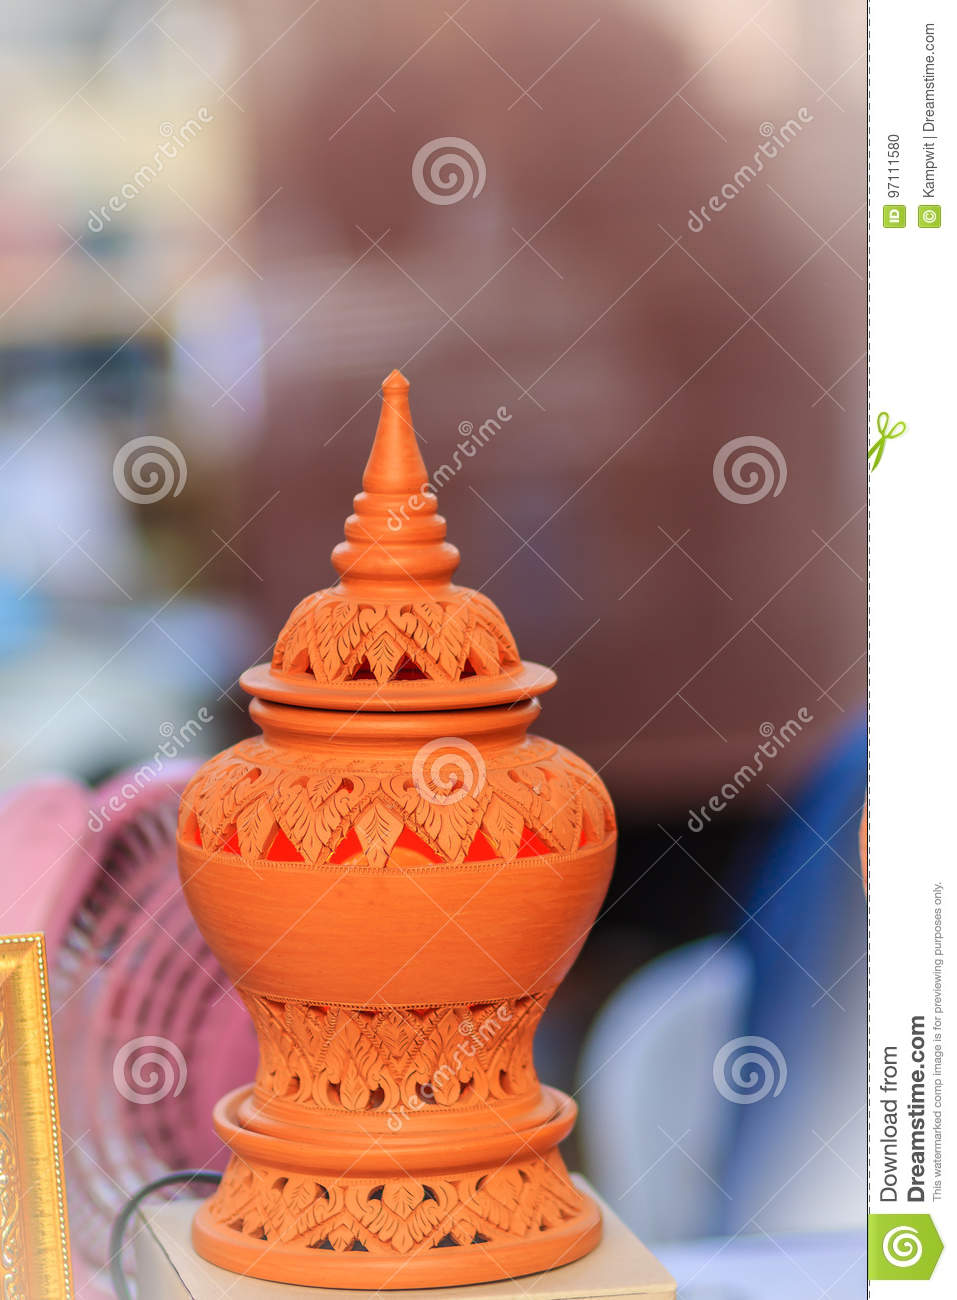 Beautiful Handmade Ceramic Lamp In Thai S Style Patterns Potter Stock Photo Image Of Lantern Flower 97111580